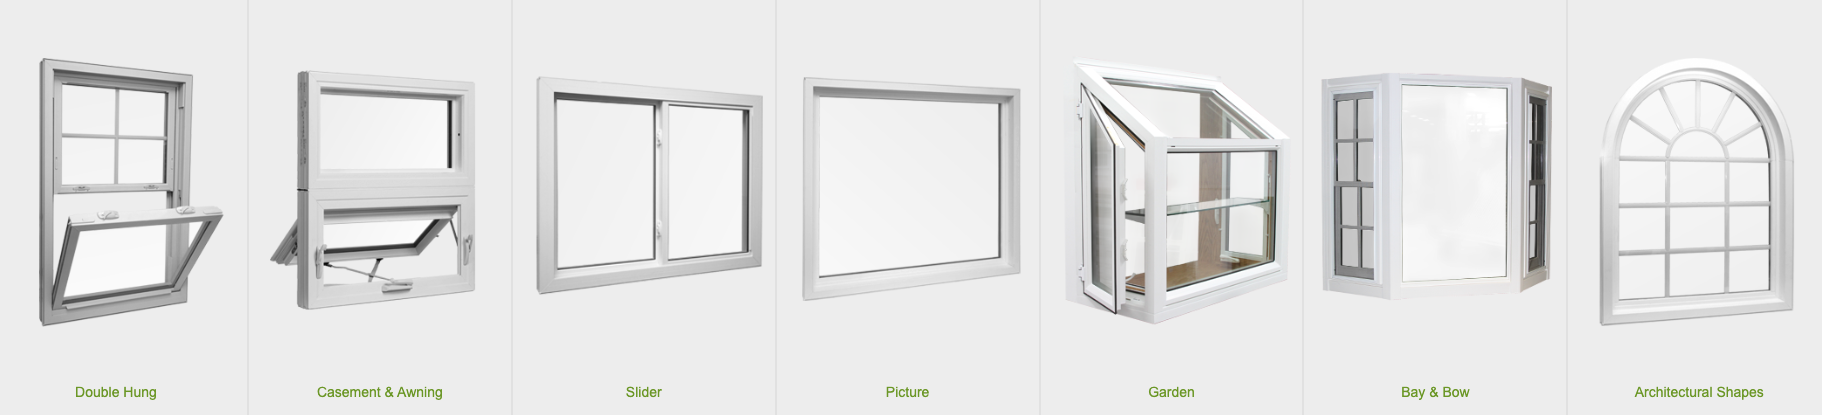 Types of windows listed